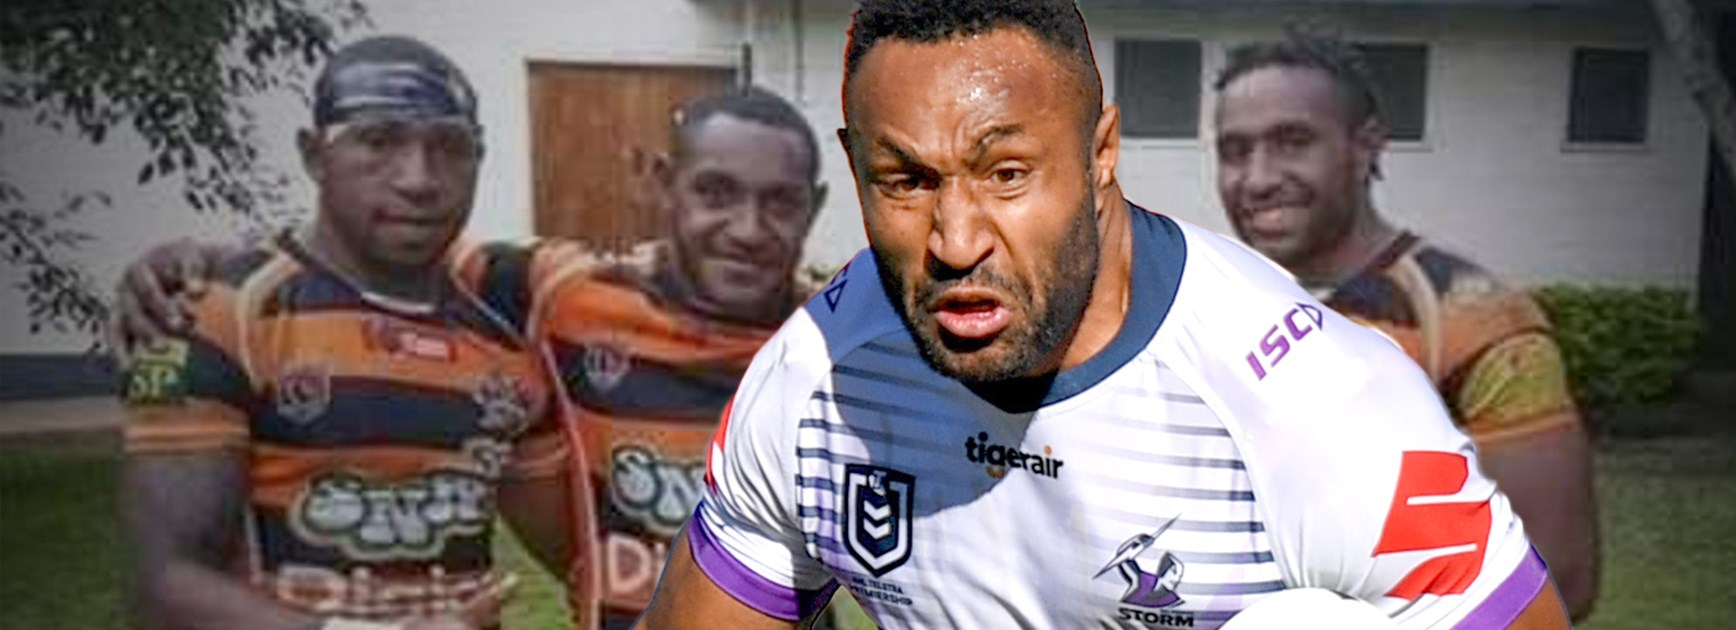 The brutal Olam hit after Mum finally gave rugby league blessing